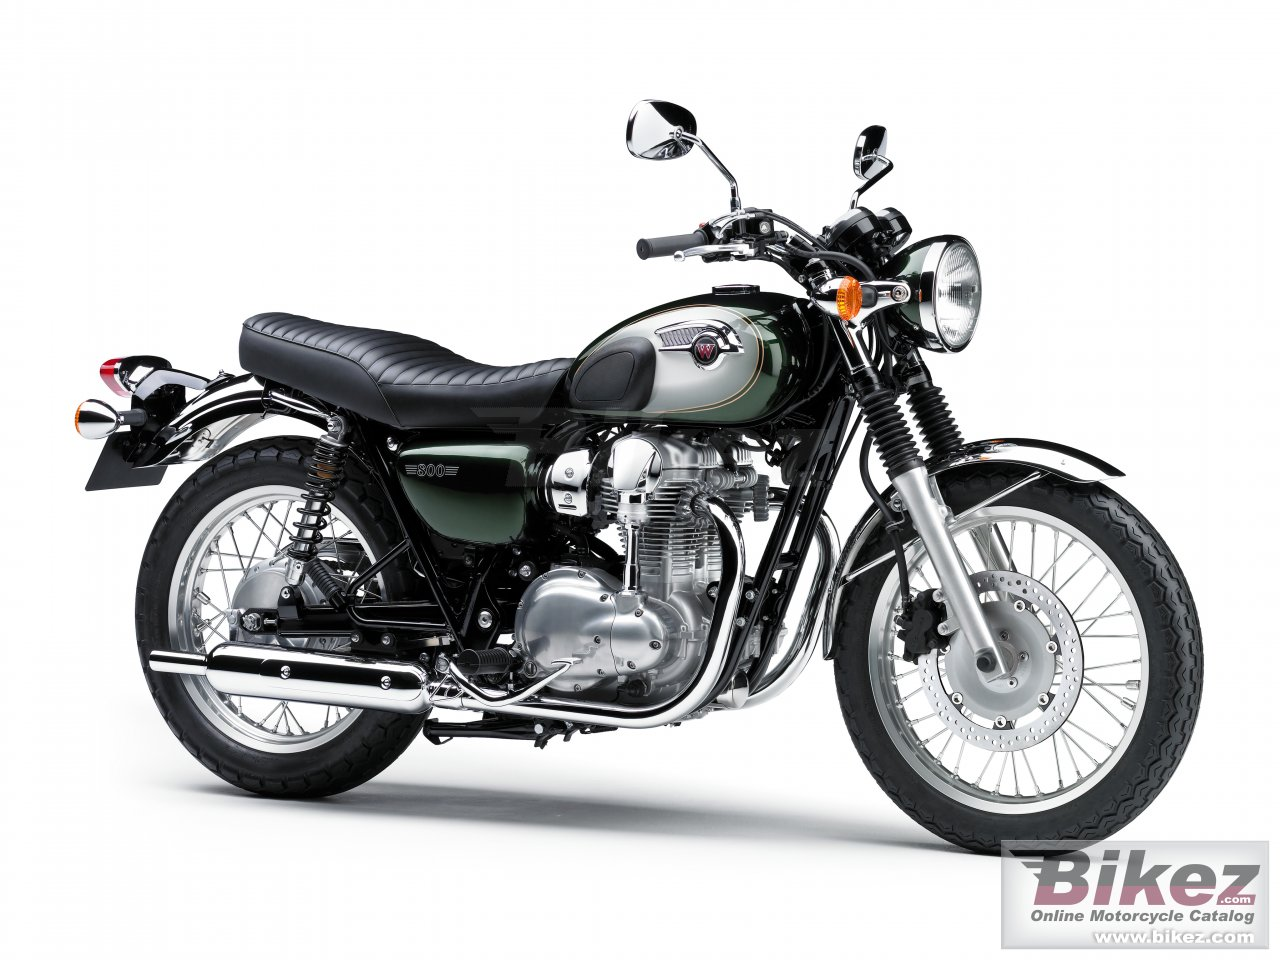 Big Kawasaki w800 picture and wallpaper from Bikez.com